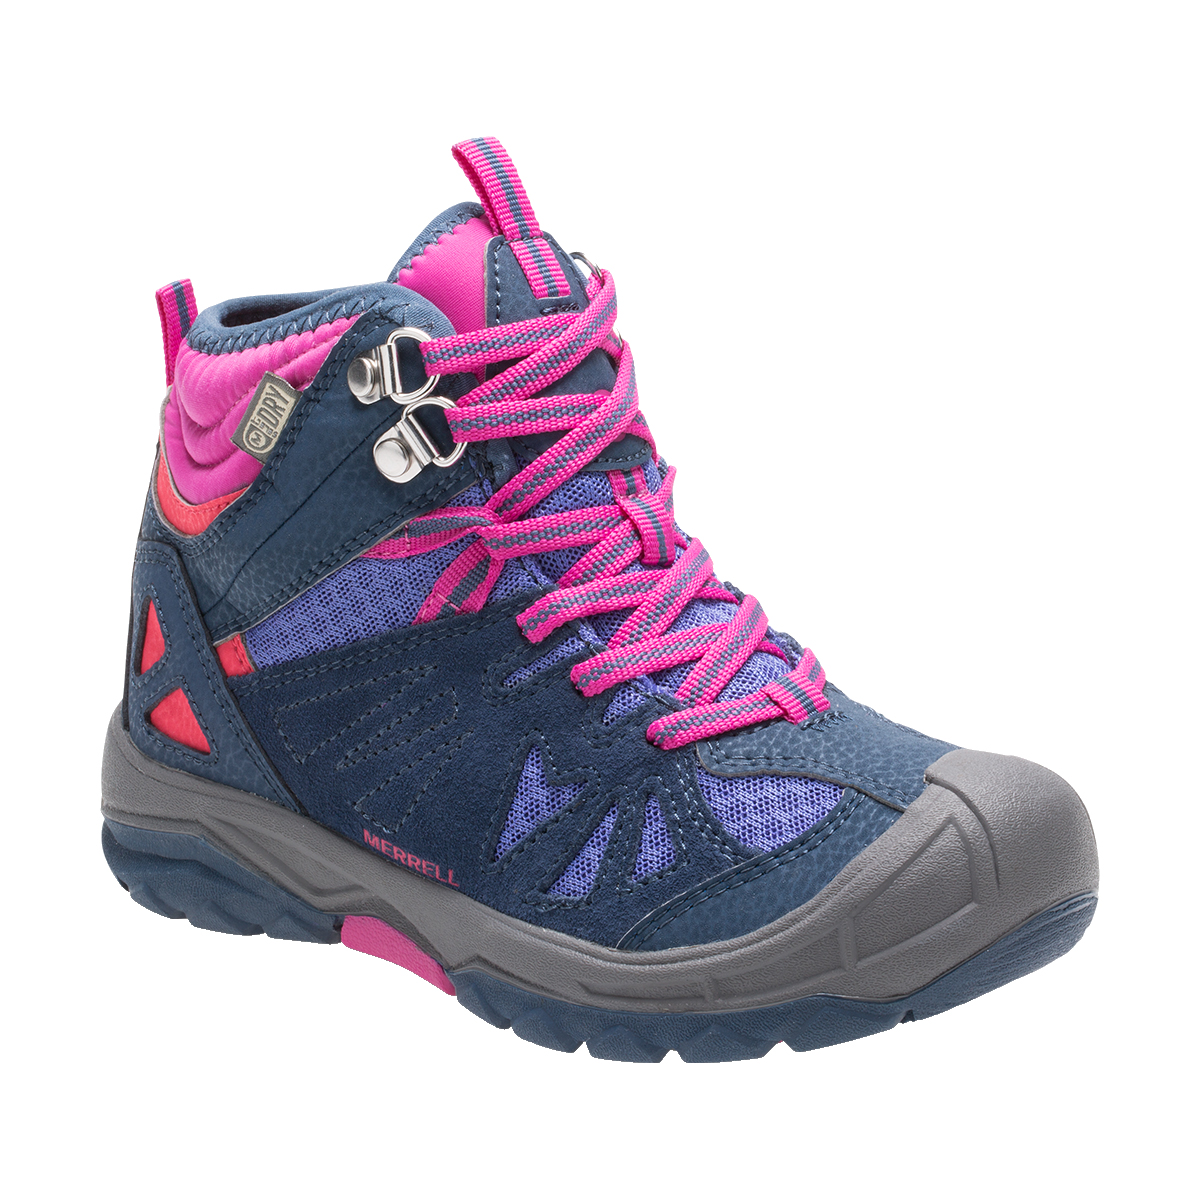 5aec8e3c Merrell Capra Mid Waterproof Shoes - Children to Youths